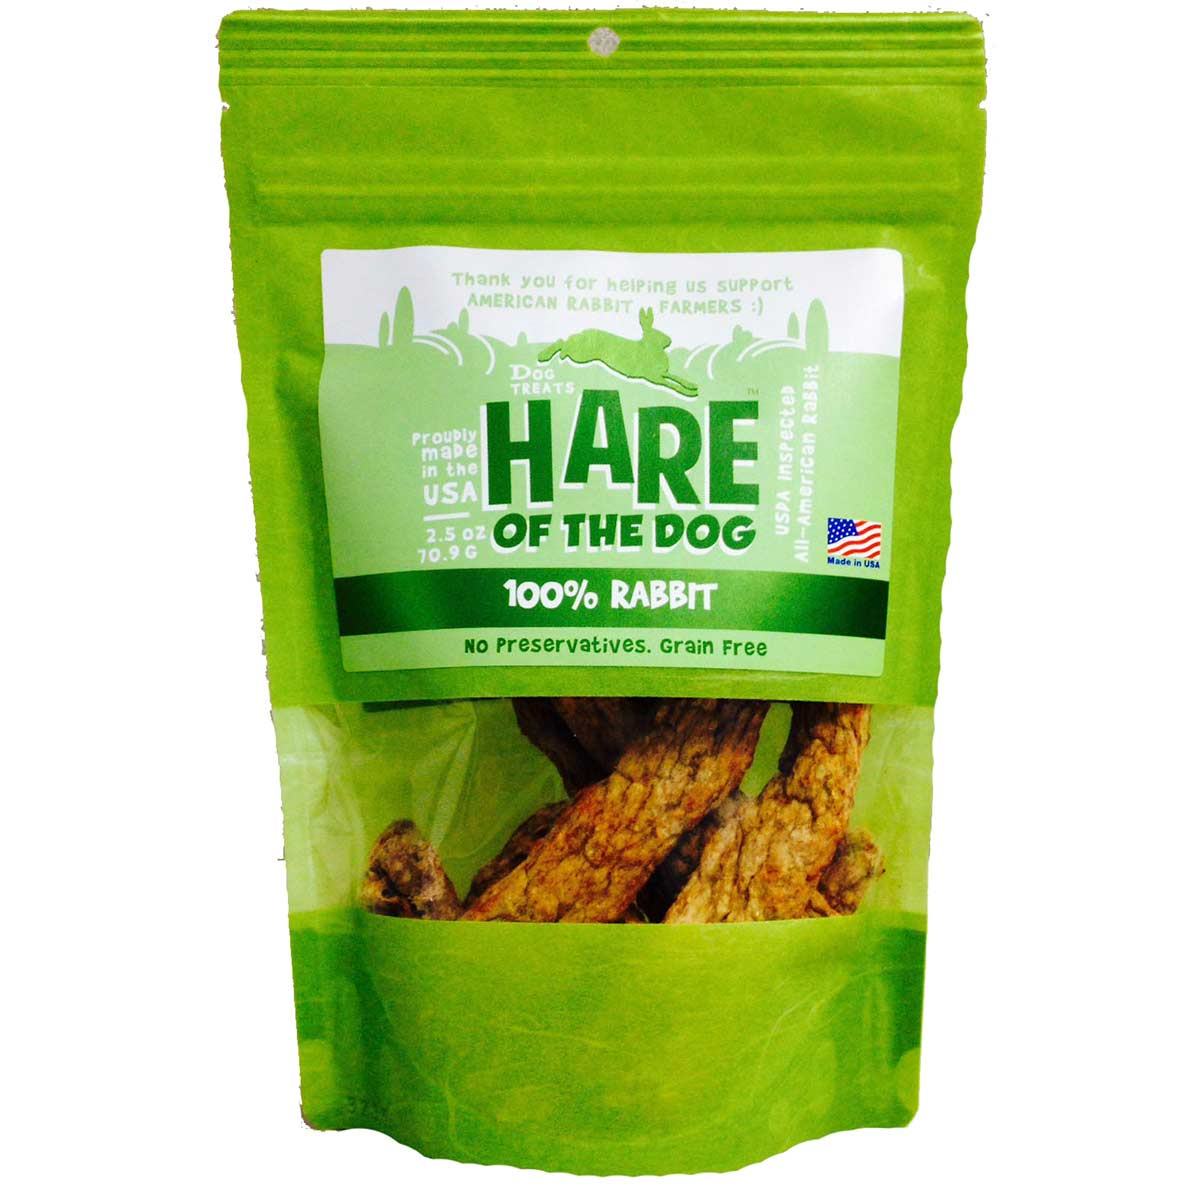 Hare of the Dog Rabbit Jerky Dog Treats